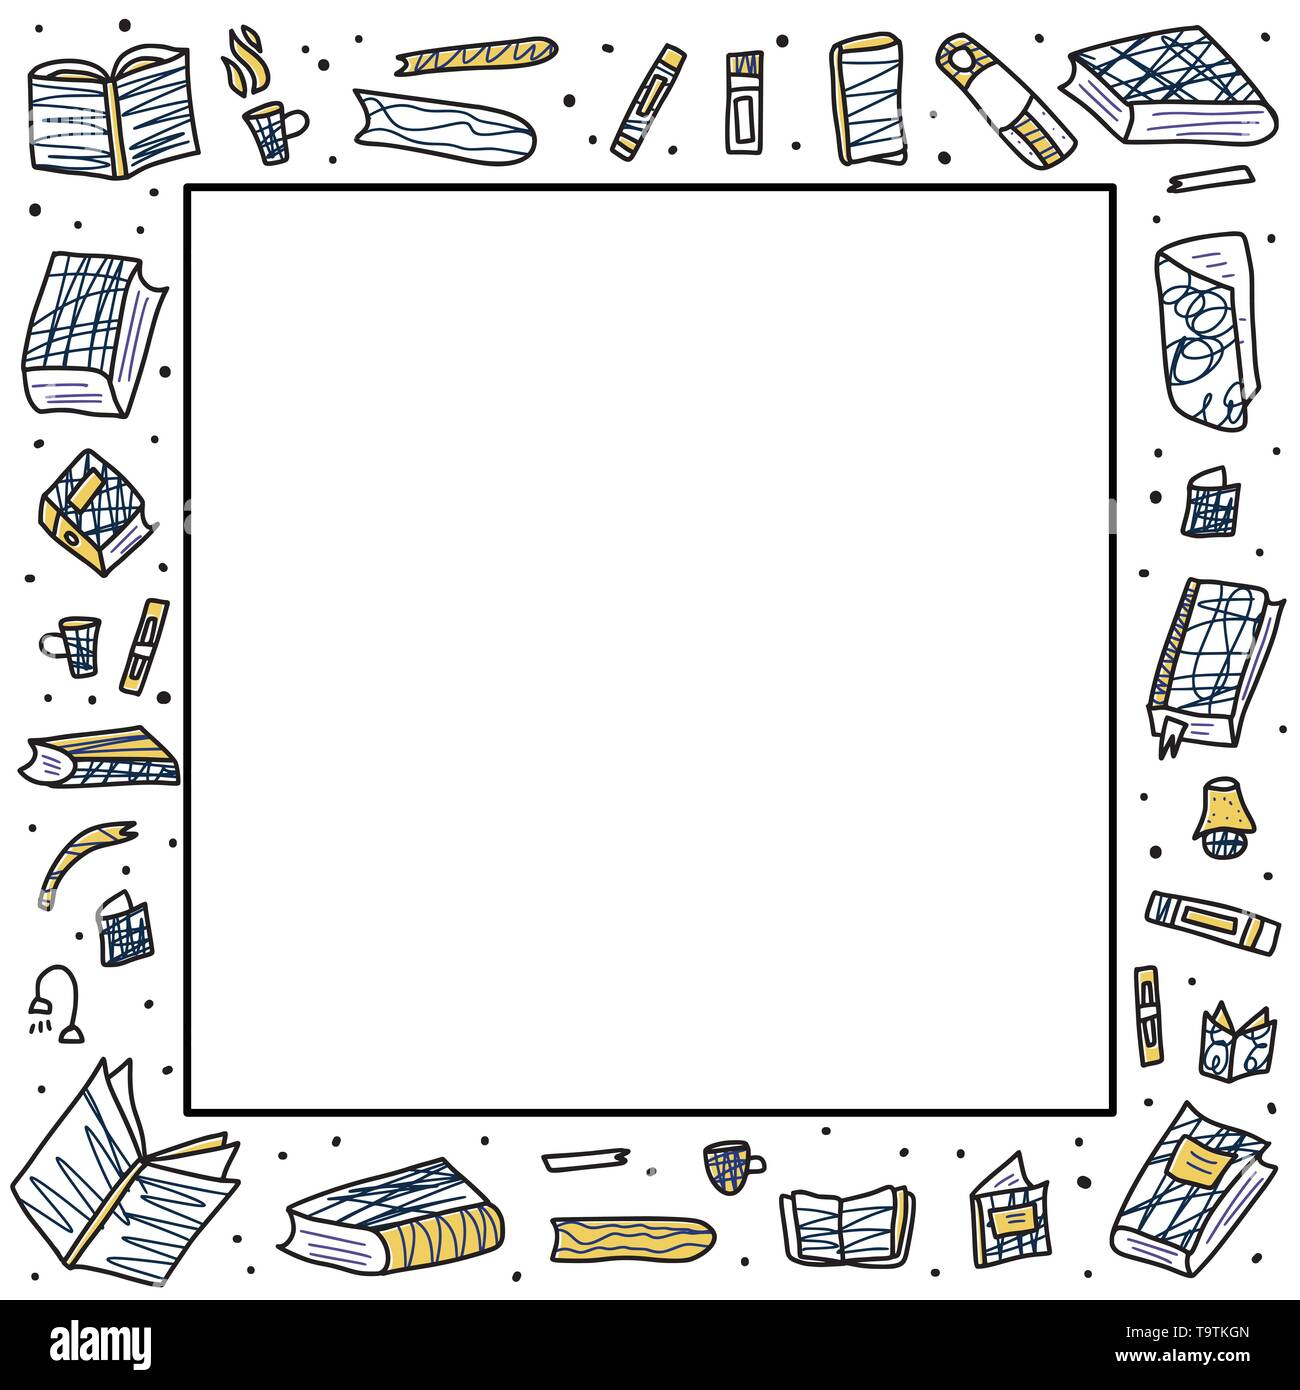 Square frame of book set in doodle style. Book club concept. Symbols of reading on white background. Vector illustration. - Stock Image